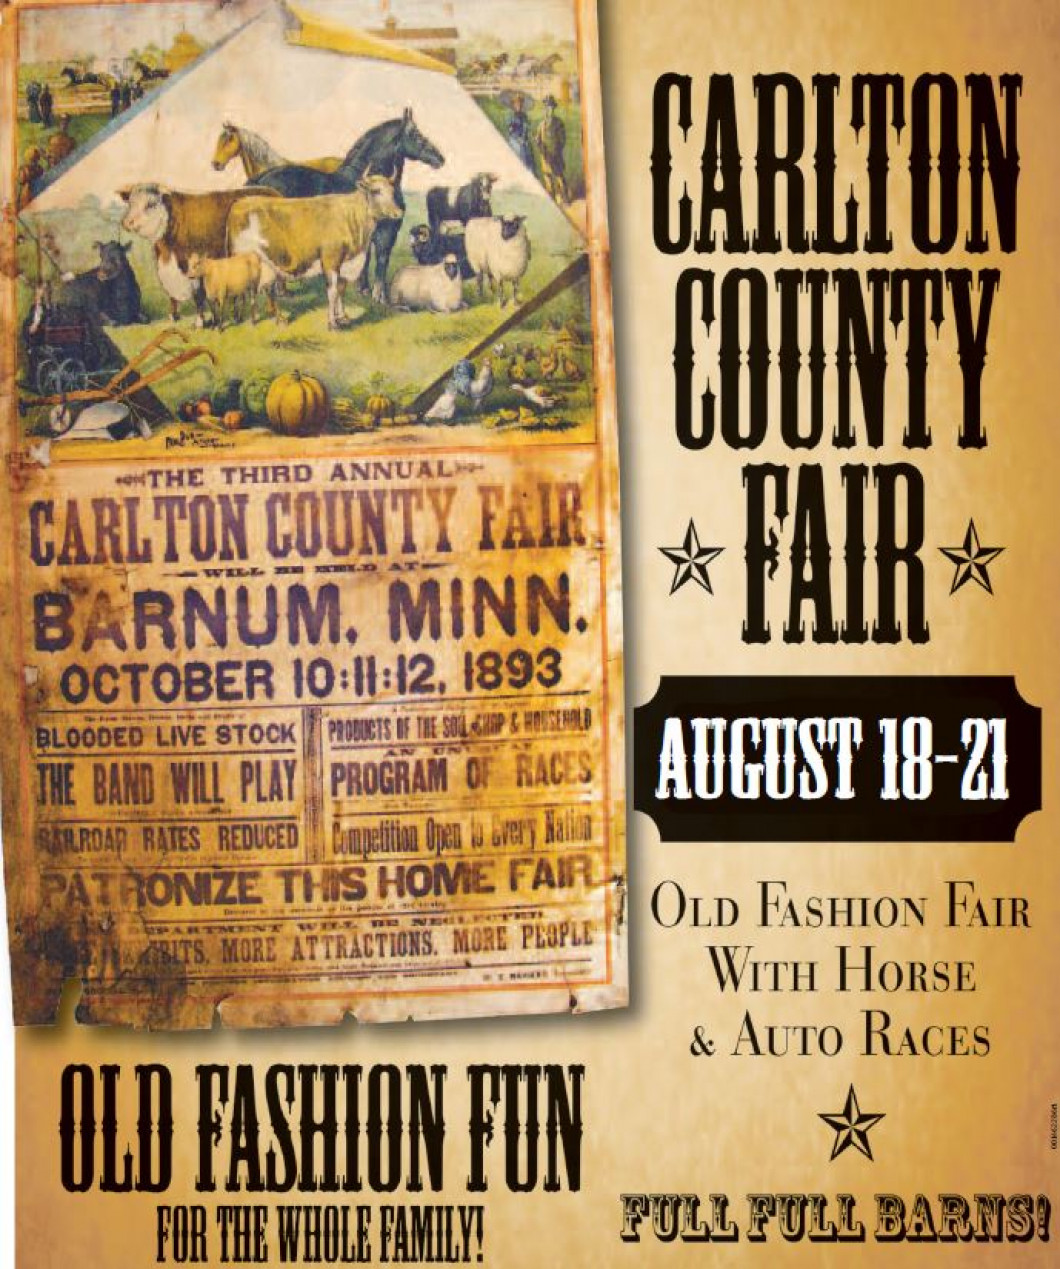 Carlton County Fair - August 18,19,20 & 21, 2016